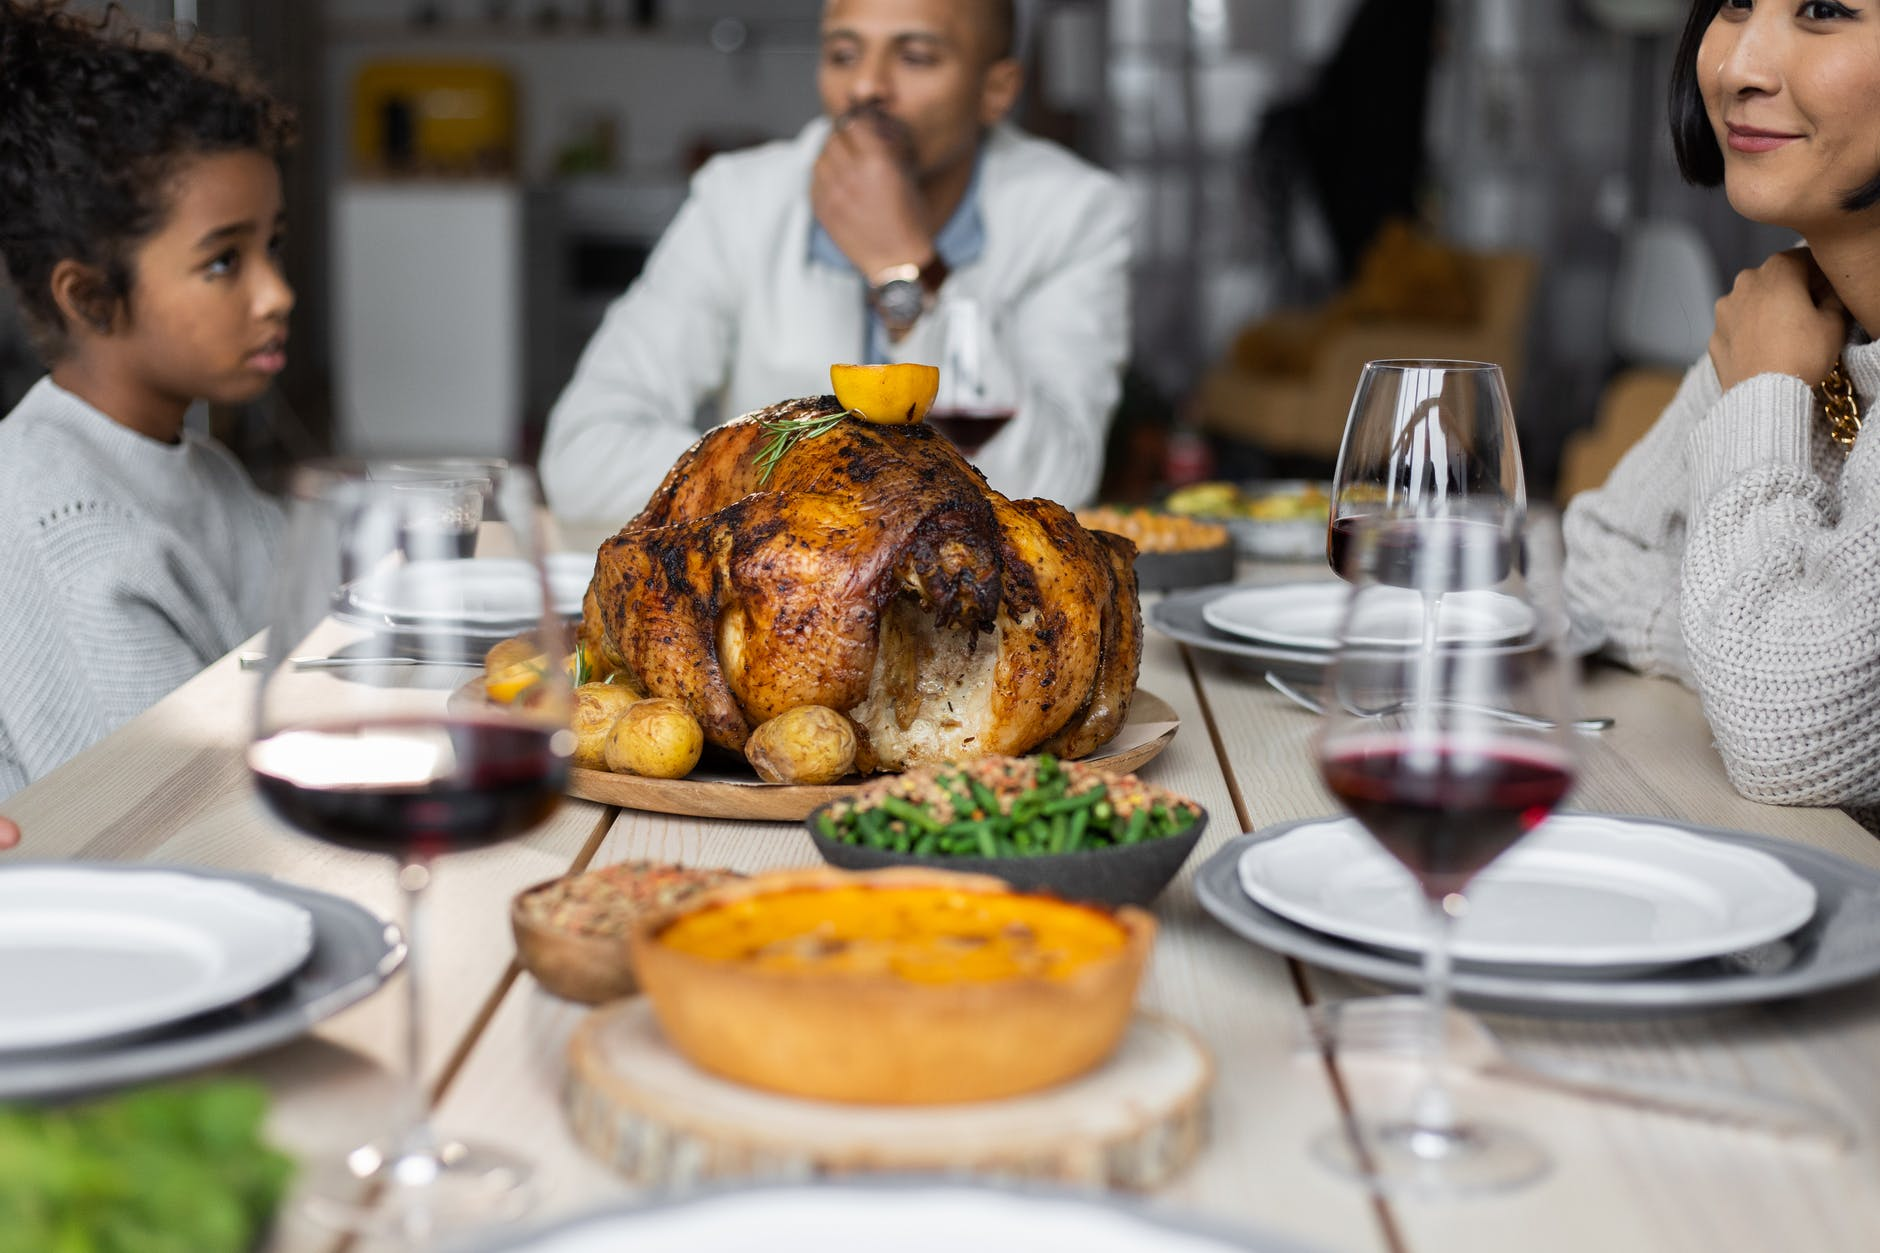 crop diverse people at table with turkey